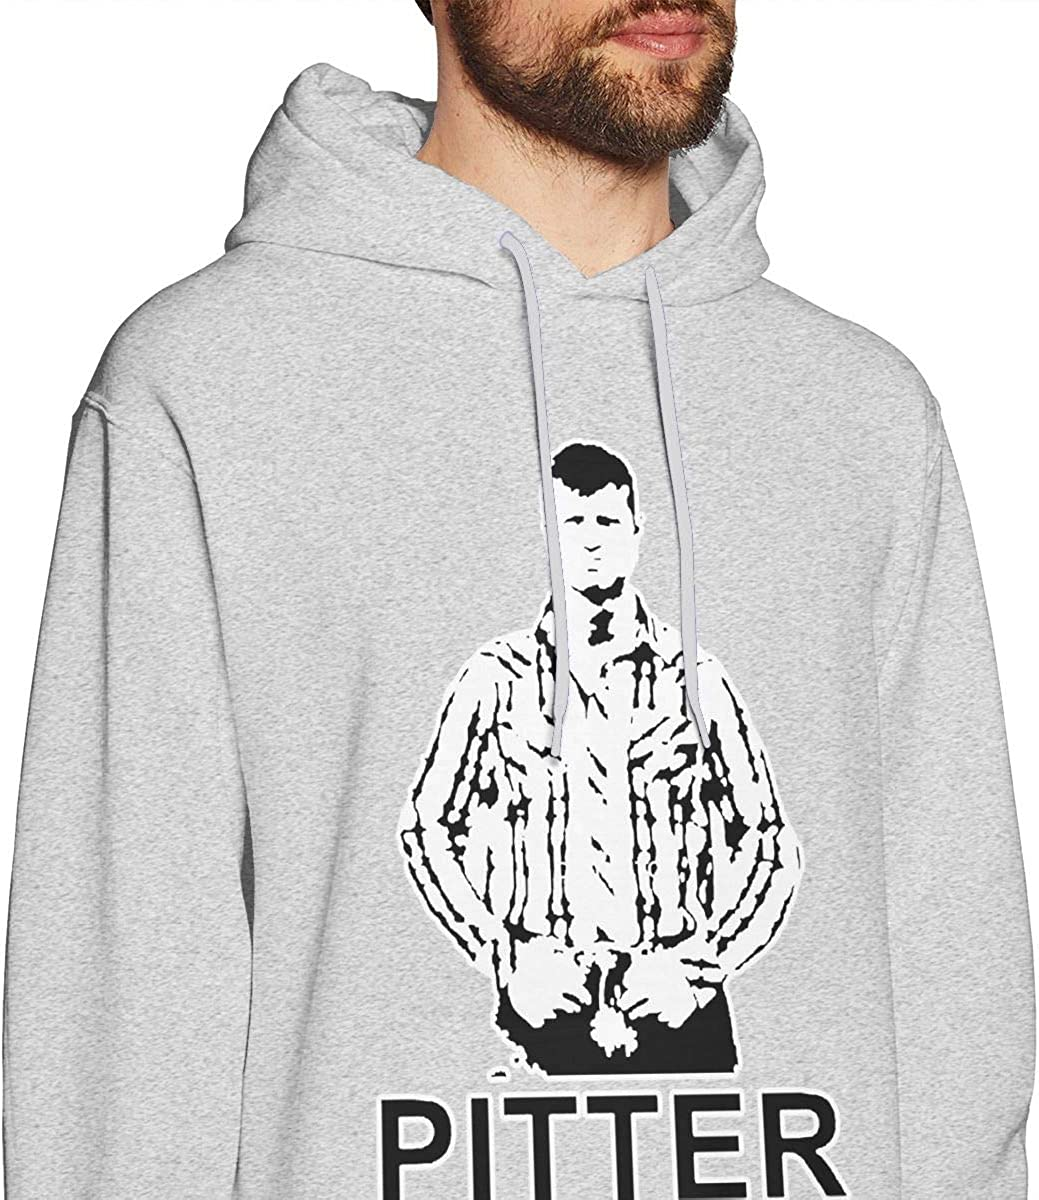 MUSICOT Pitter Patter Letterkenny Mens Pullover Hooded Sweatshirt Cozy Sport Outwear